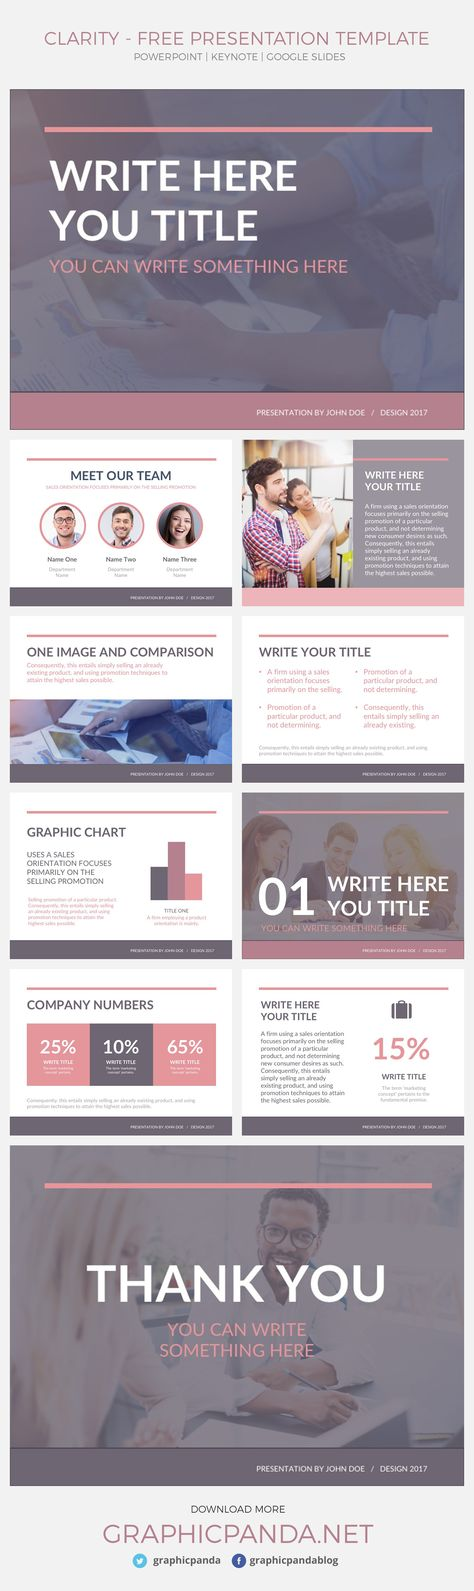 This is a modern and professional free presentation template for - company profile template microsoft